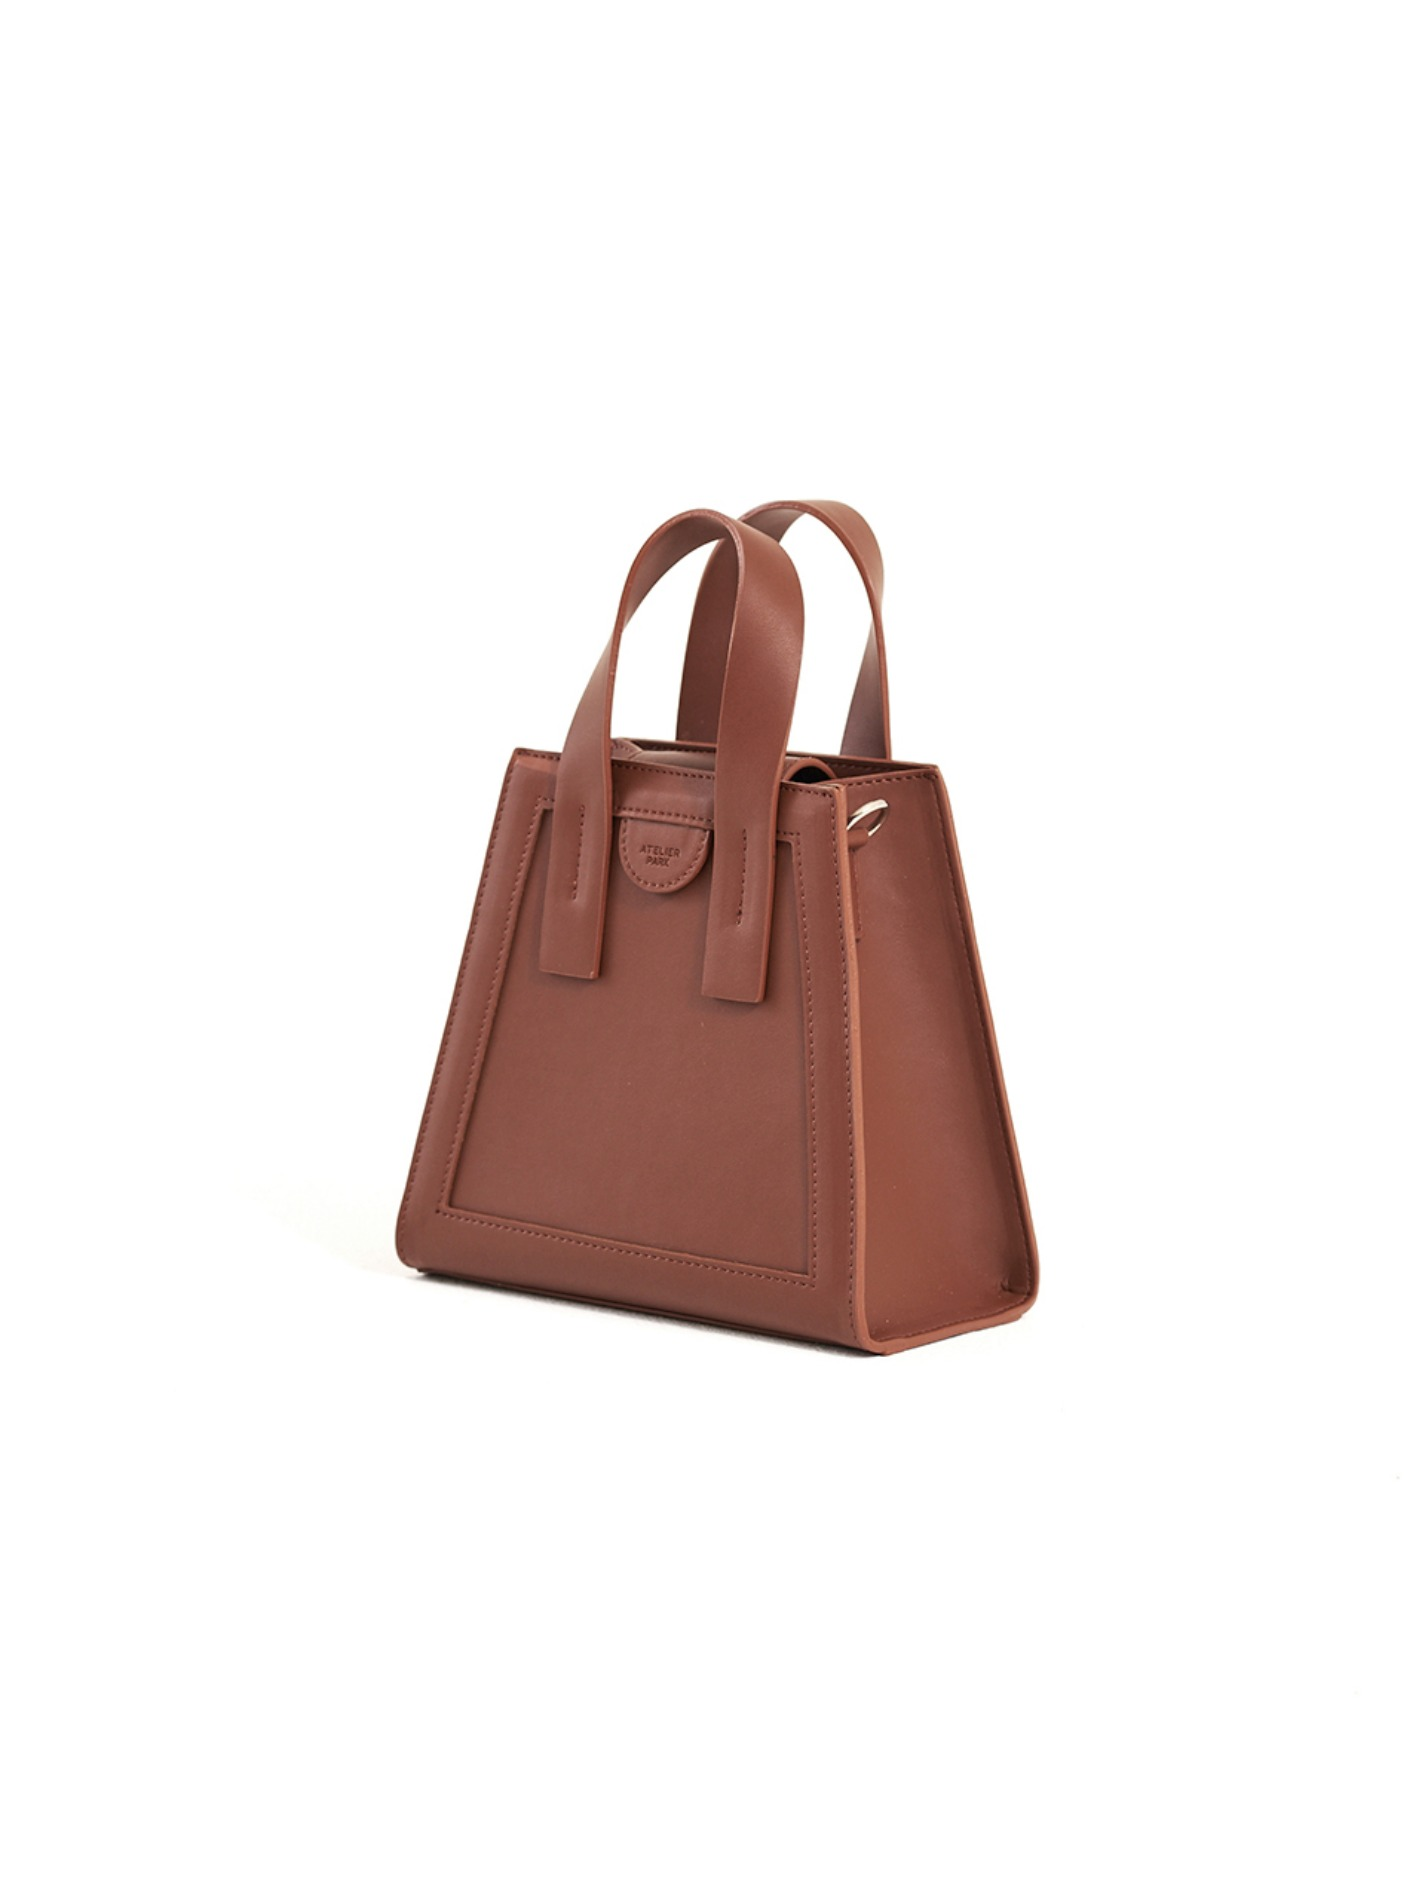 GEO BAG_MINI_BROWN